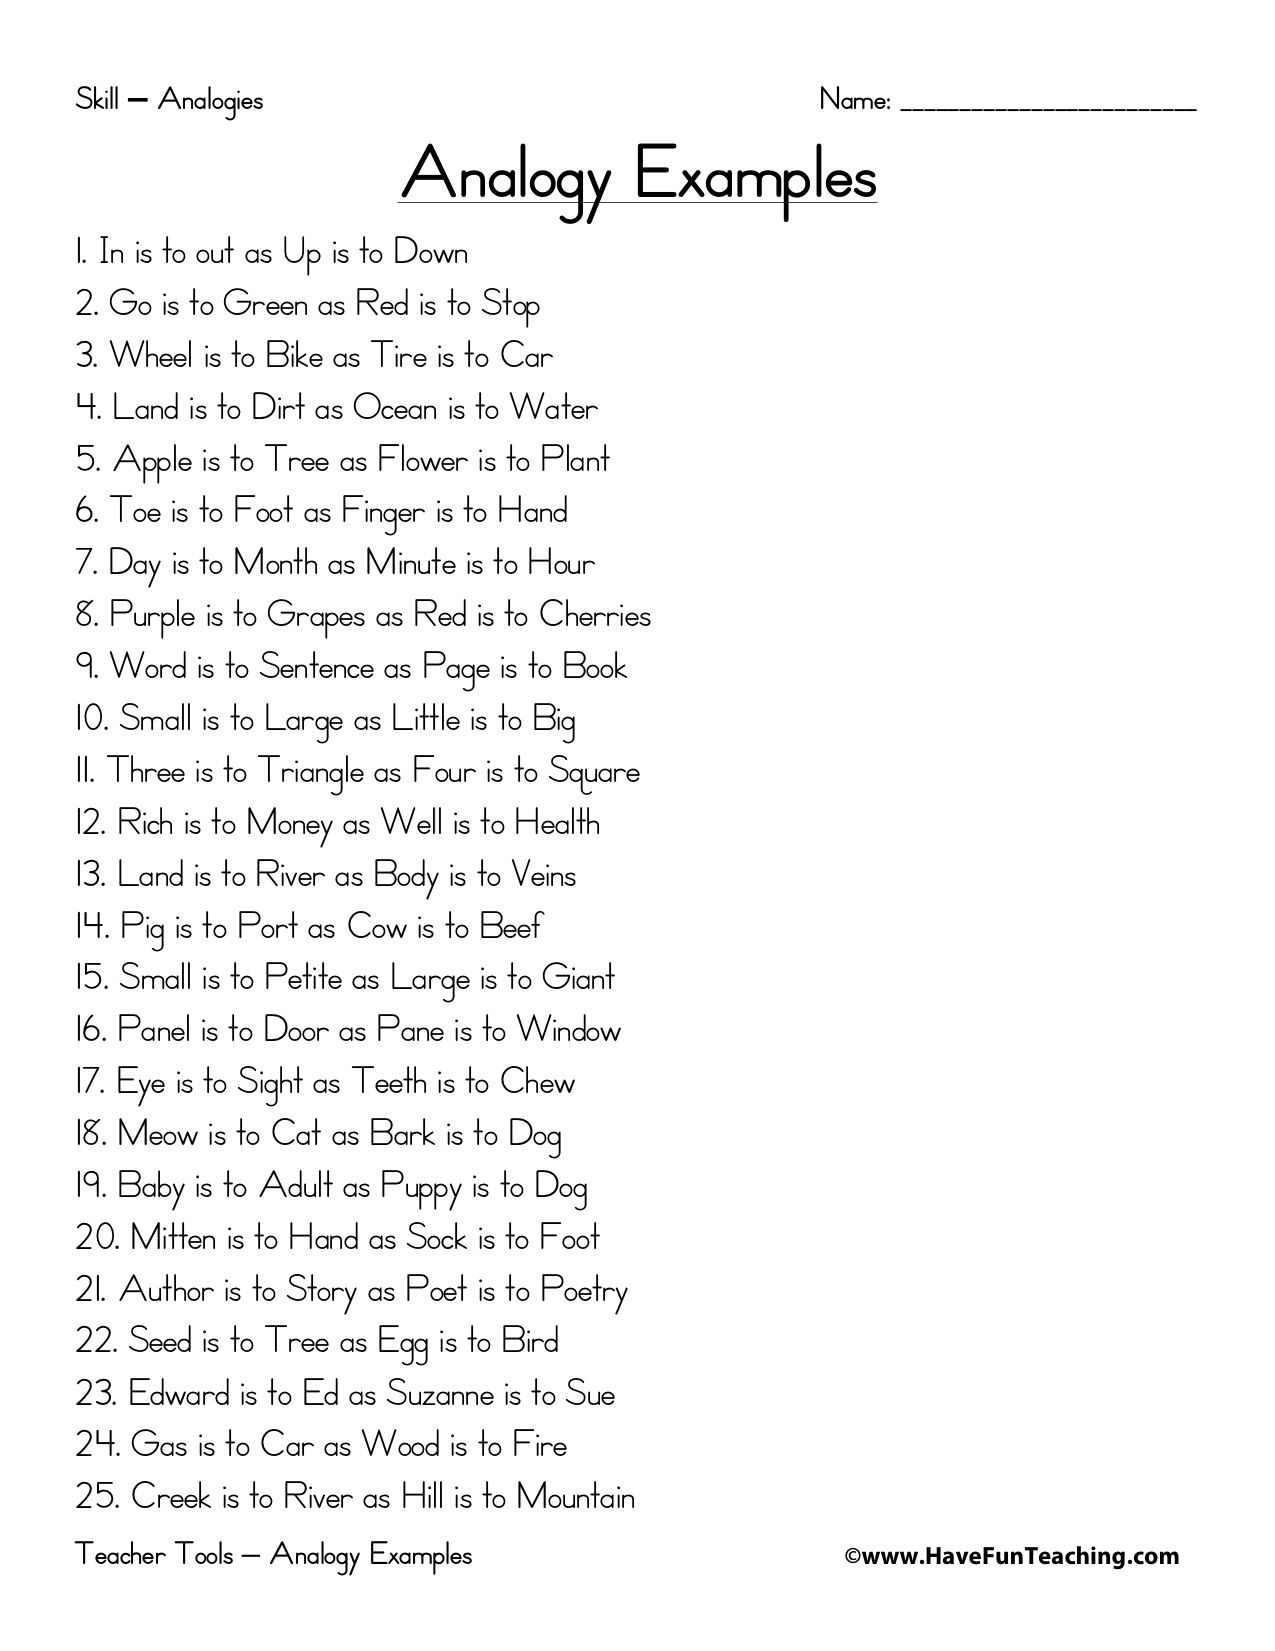 worksheet Analogies For Middle School Students Worksheets analogy worksheets middle school free library download n logy liter cy p terest l ngu ge nd rts